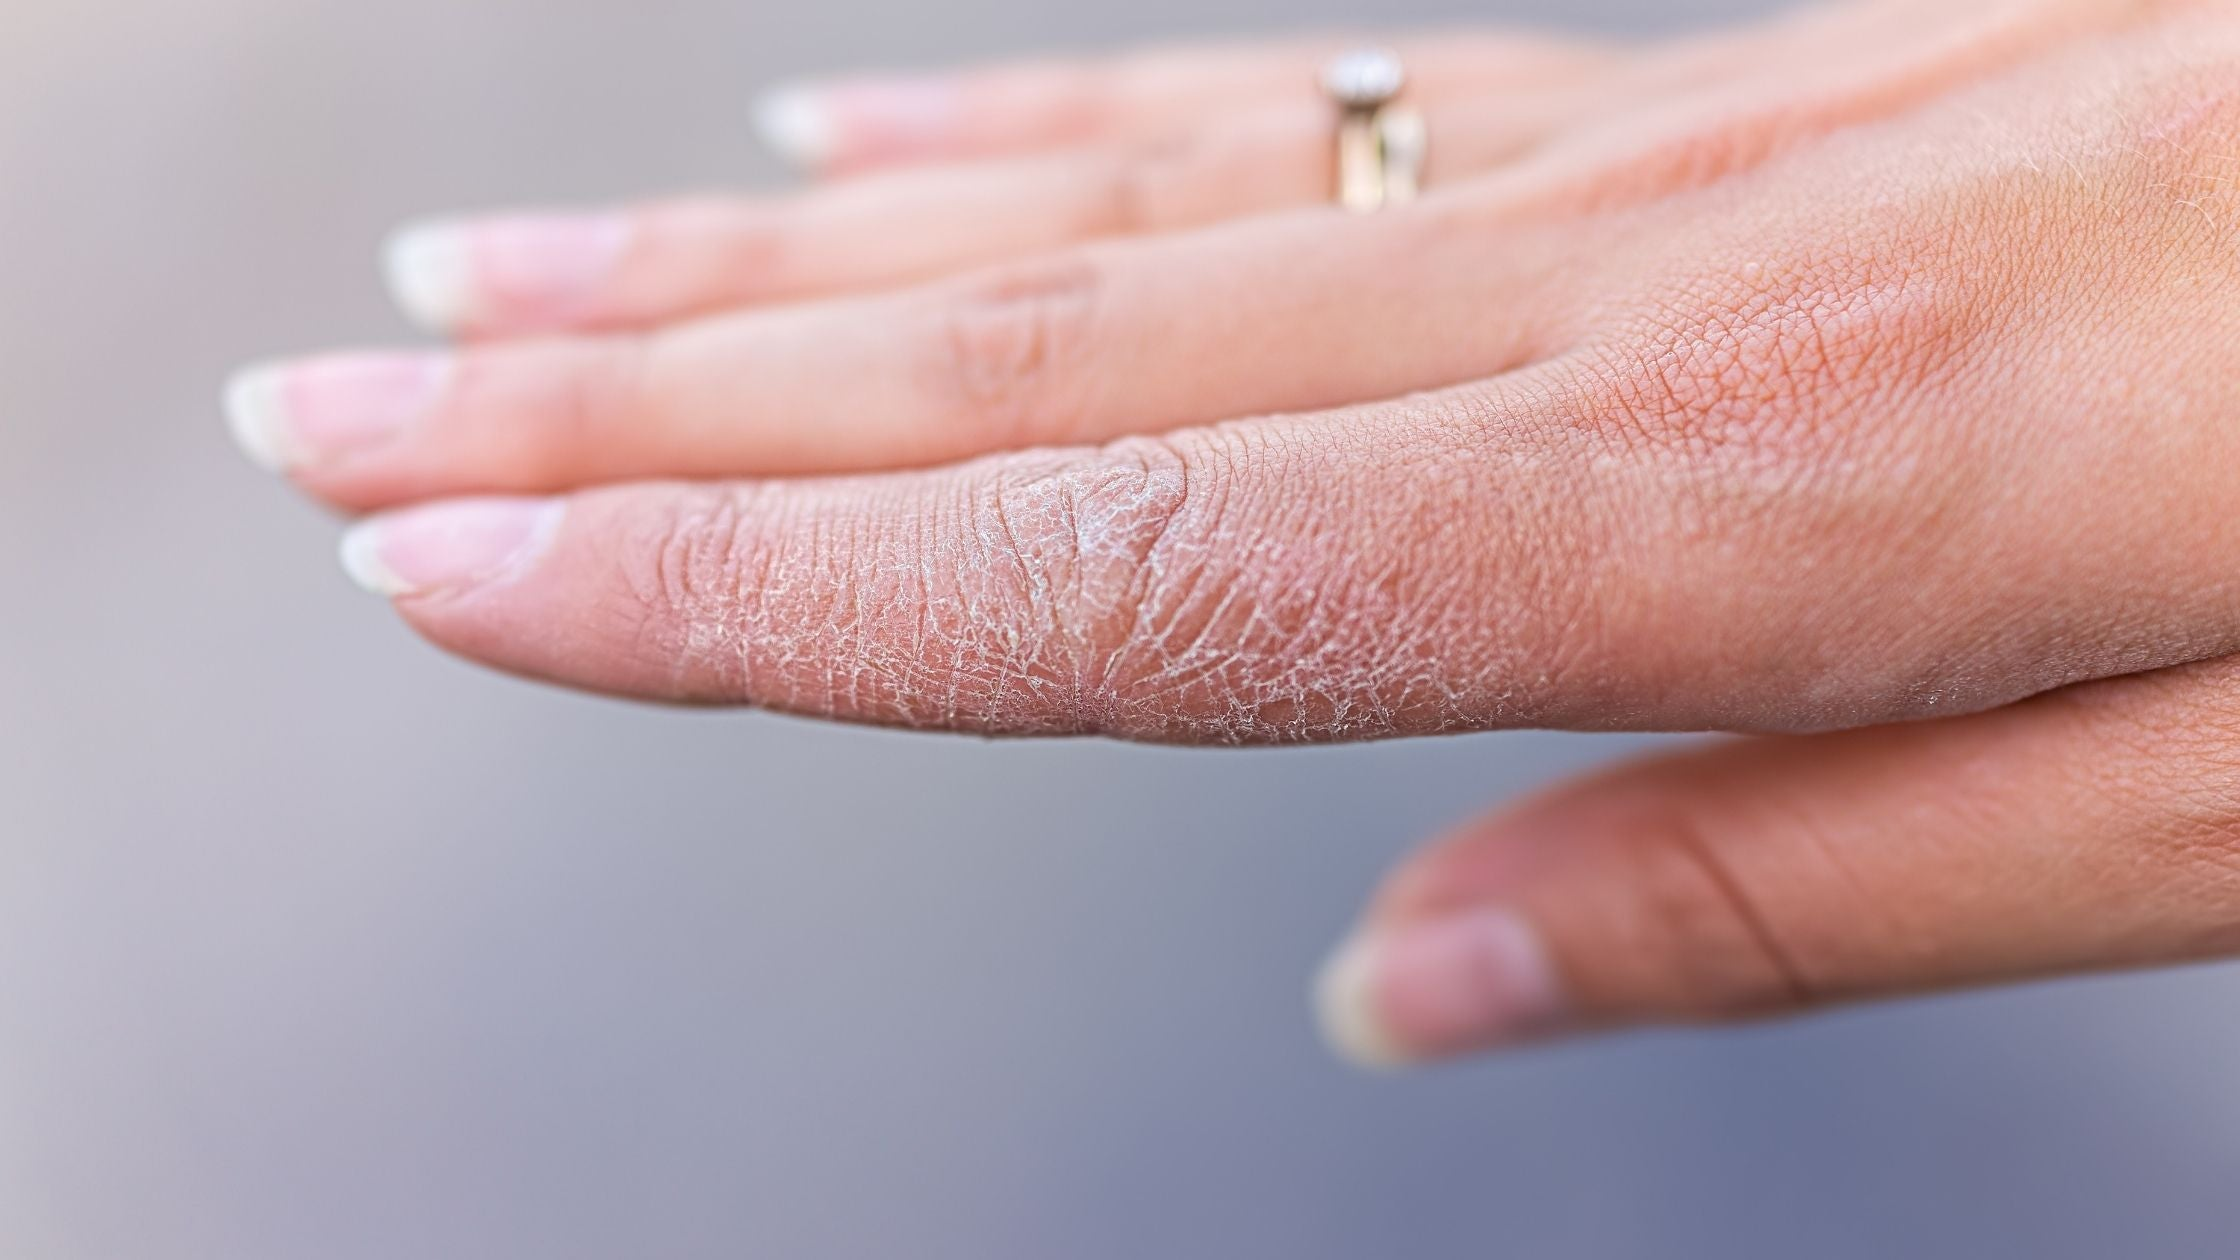 How To Get Rid Of Dry Hands?